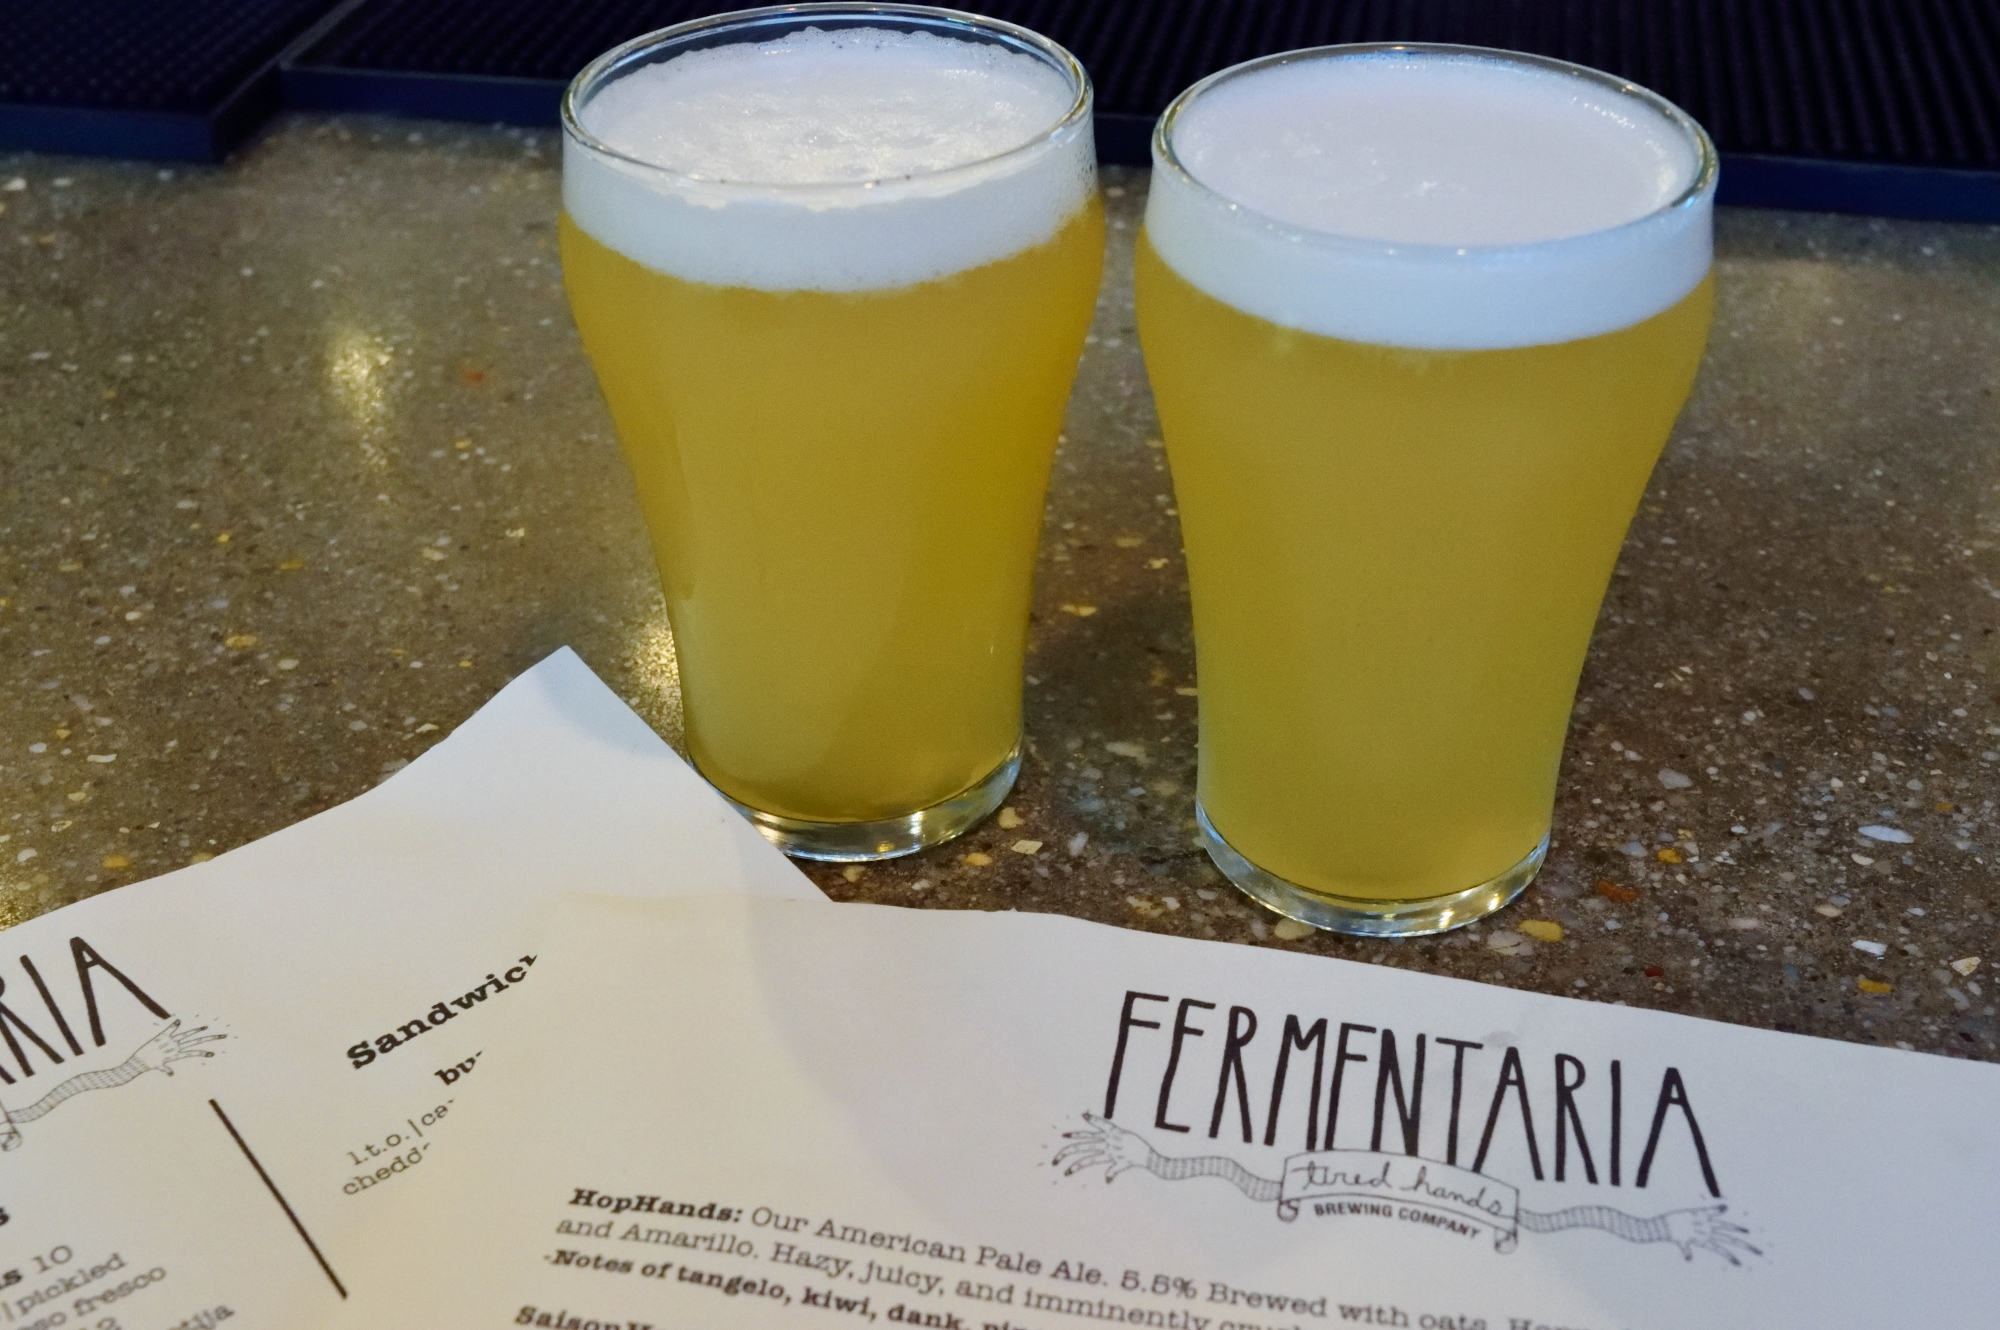 Tired Hands Fermentaria - at long last...